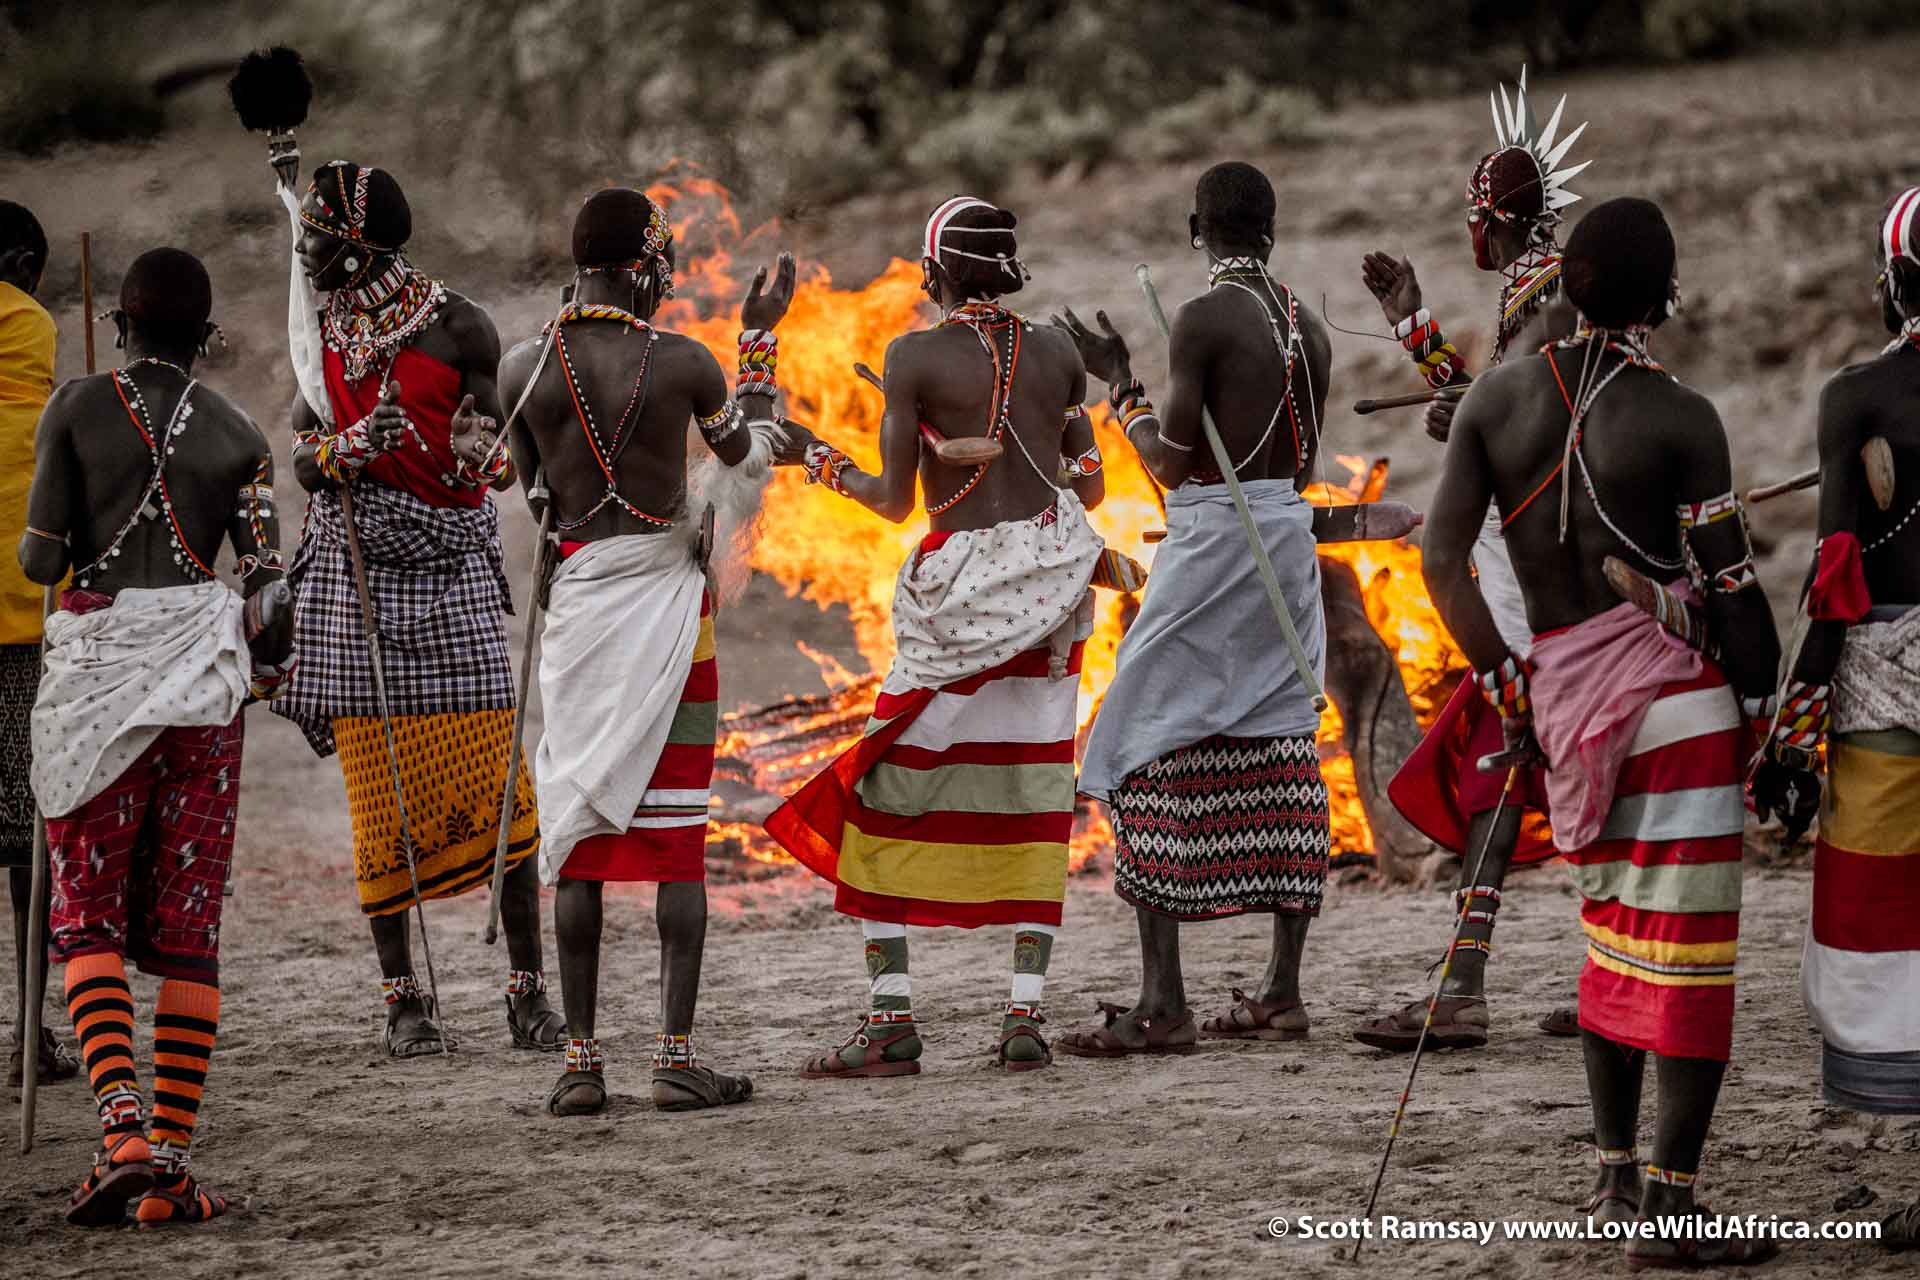 I love how the colour of the fire matches the yellows on the skirts and beads of the Samburu...and how the warriors' moving hands and arms seem to be imitating the flames of the fire.